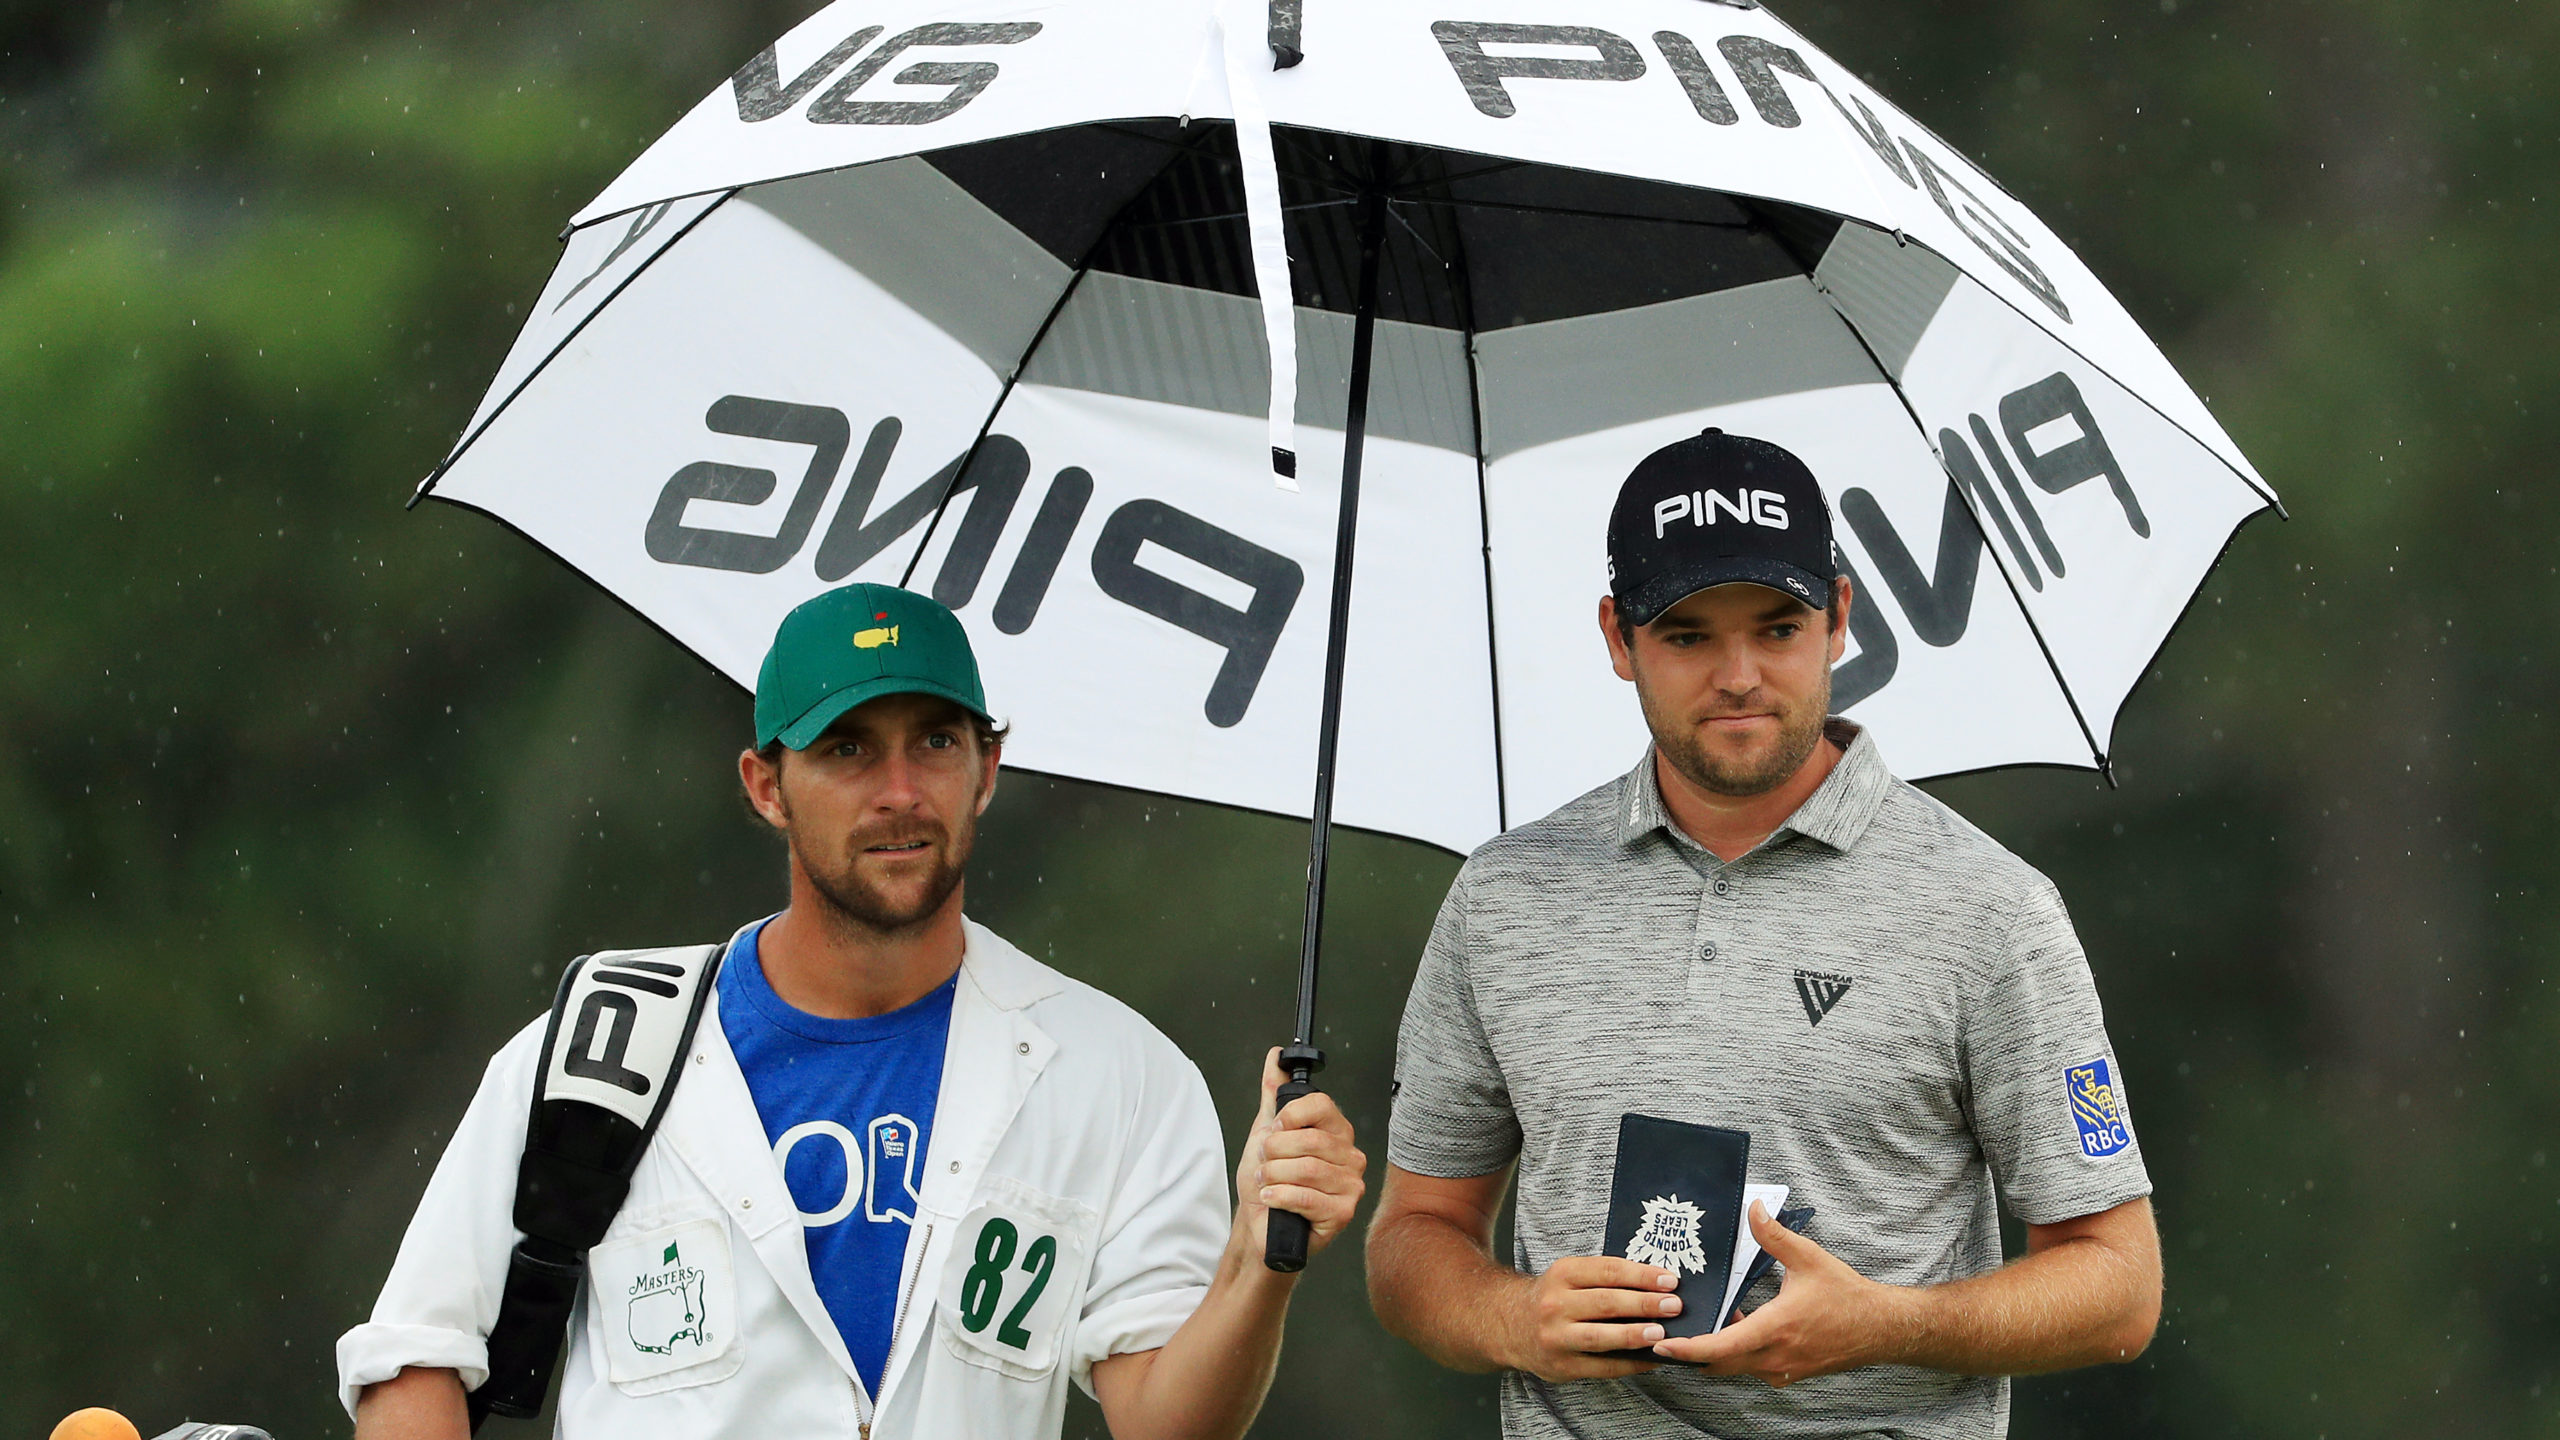 Masters Weather Report: Forecasted Rain Should Lead to Longer, Softer Augusta article feature image